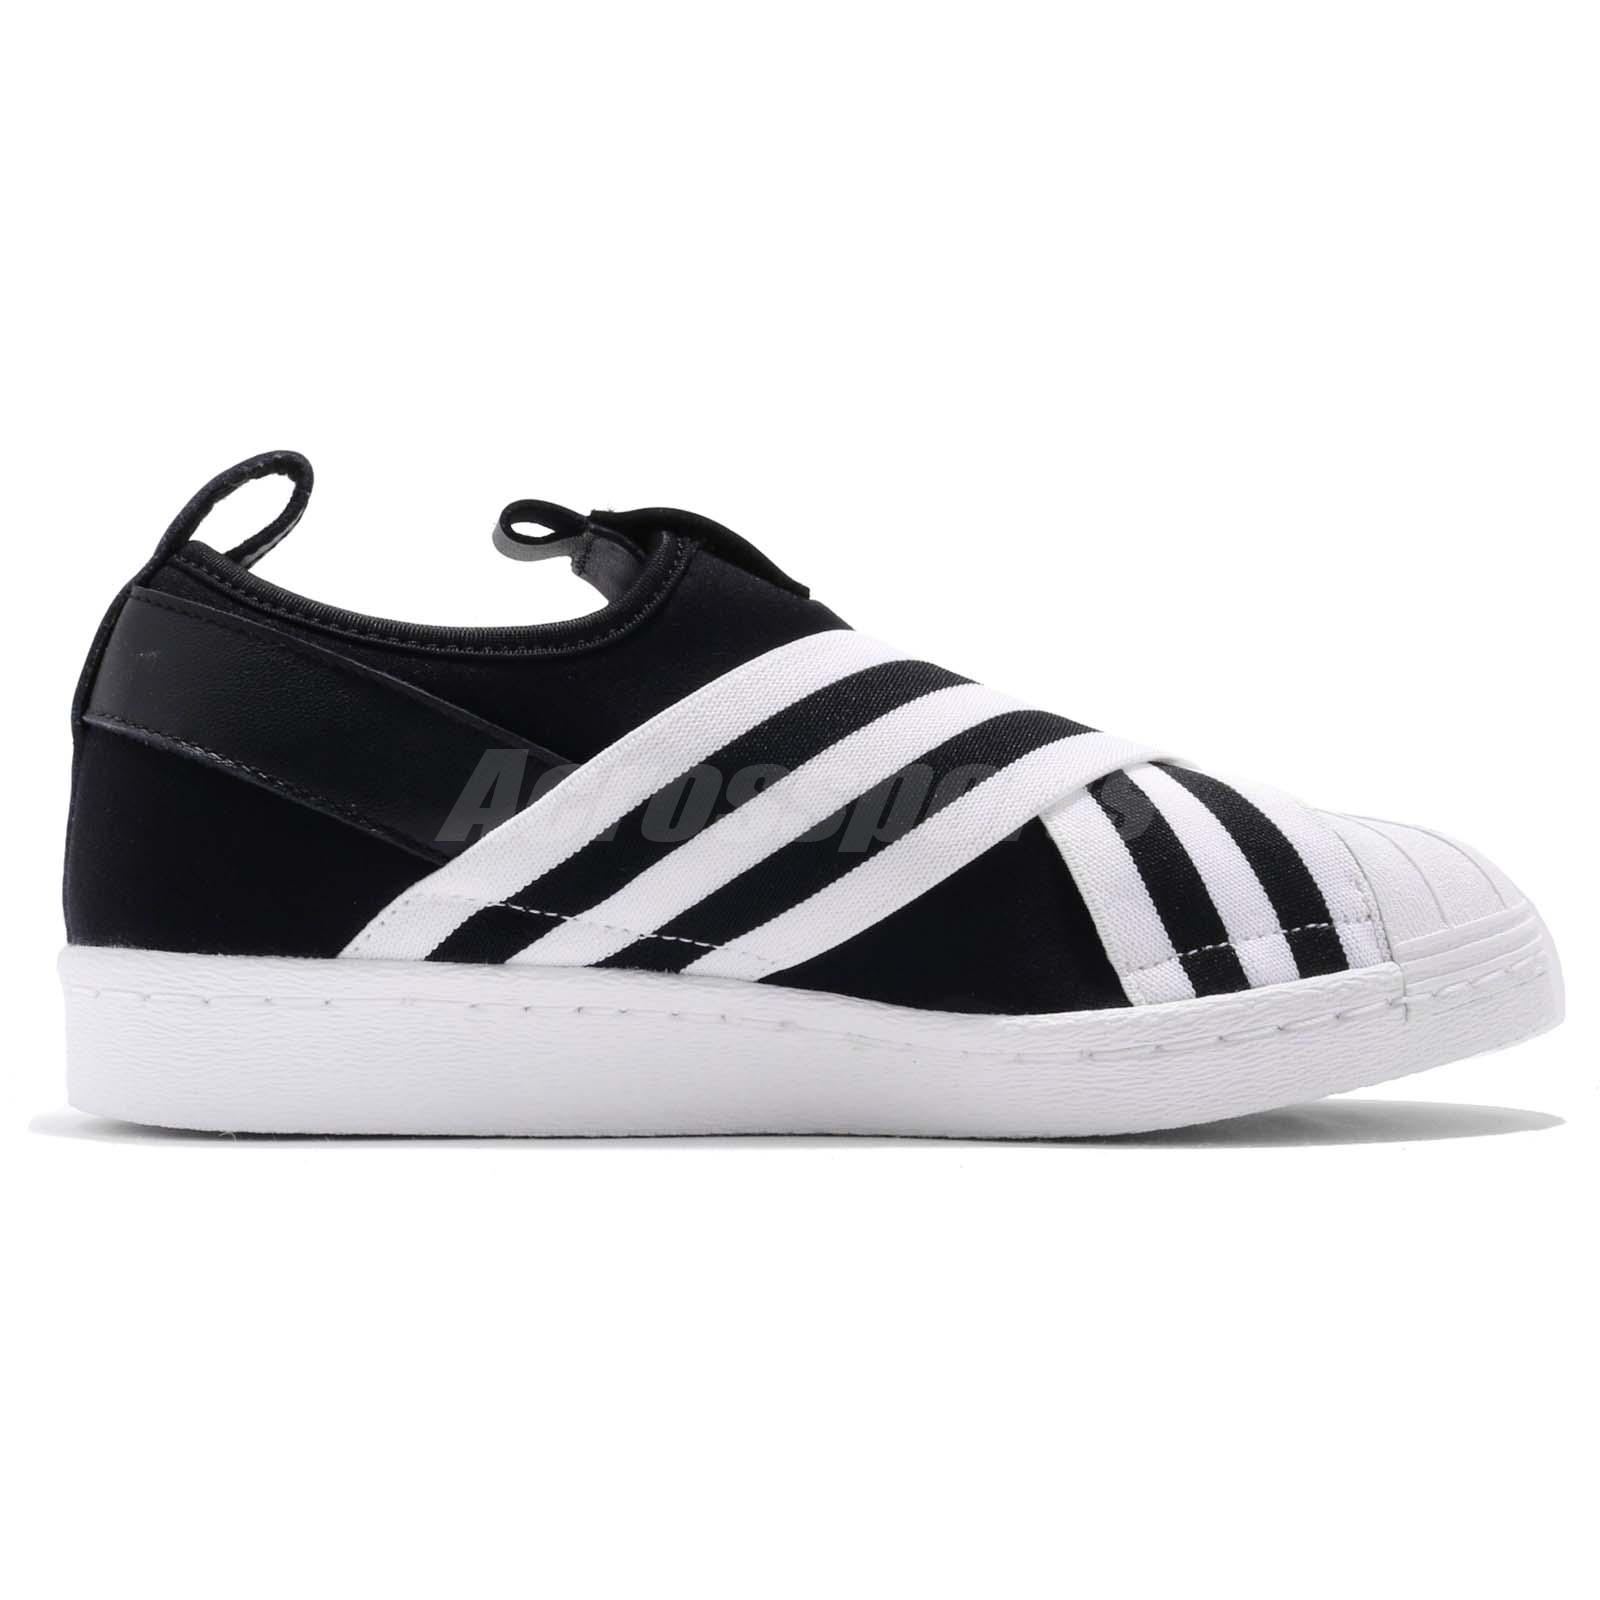 f4d917beddc20b adidas Originals Superstar Slip On W Core Black Cloud White Women Shoes  AC8582